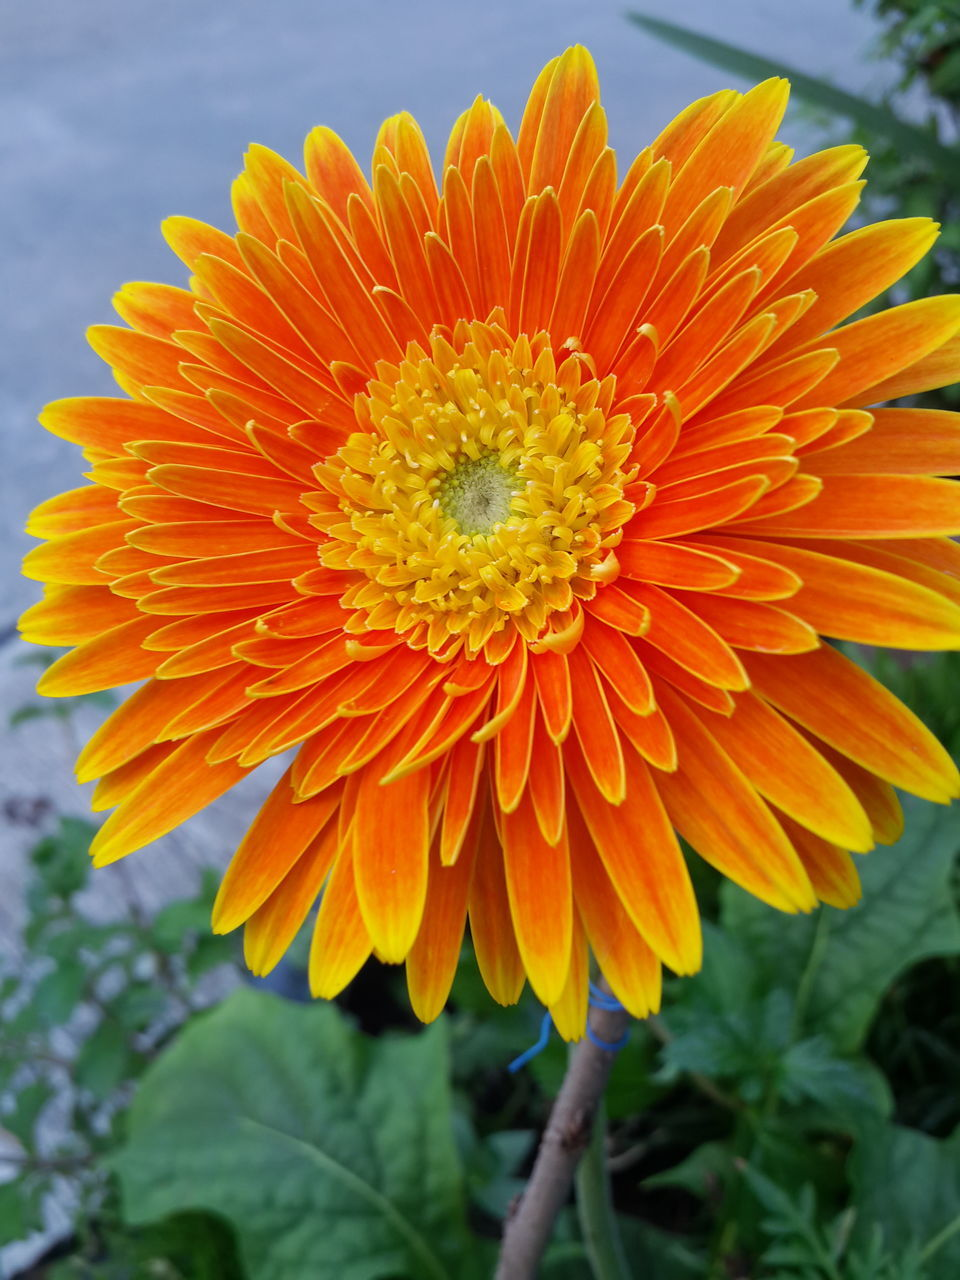 flower, petal, fragility, freshness, orange color, beauty in nature, flower head, nature, yellow, outdoors, close-up, growth, day, plant, focus on foreground, blooming, no people